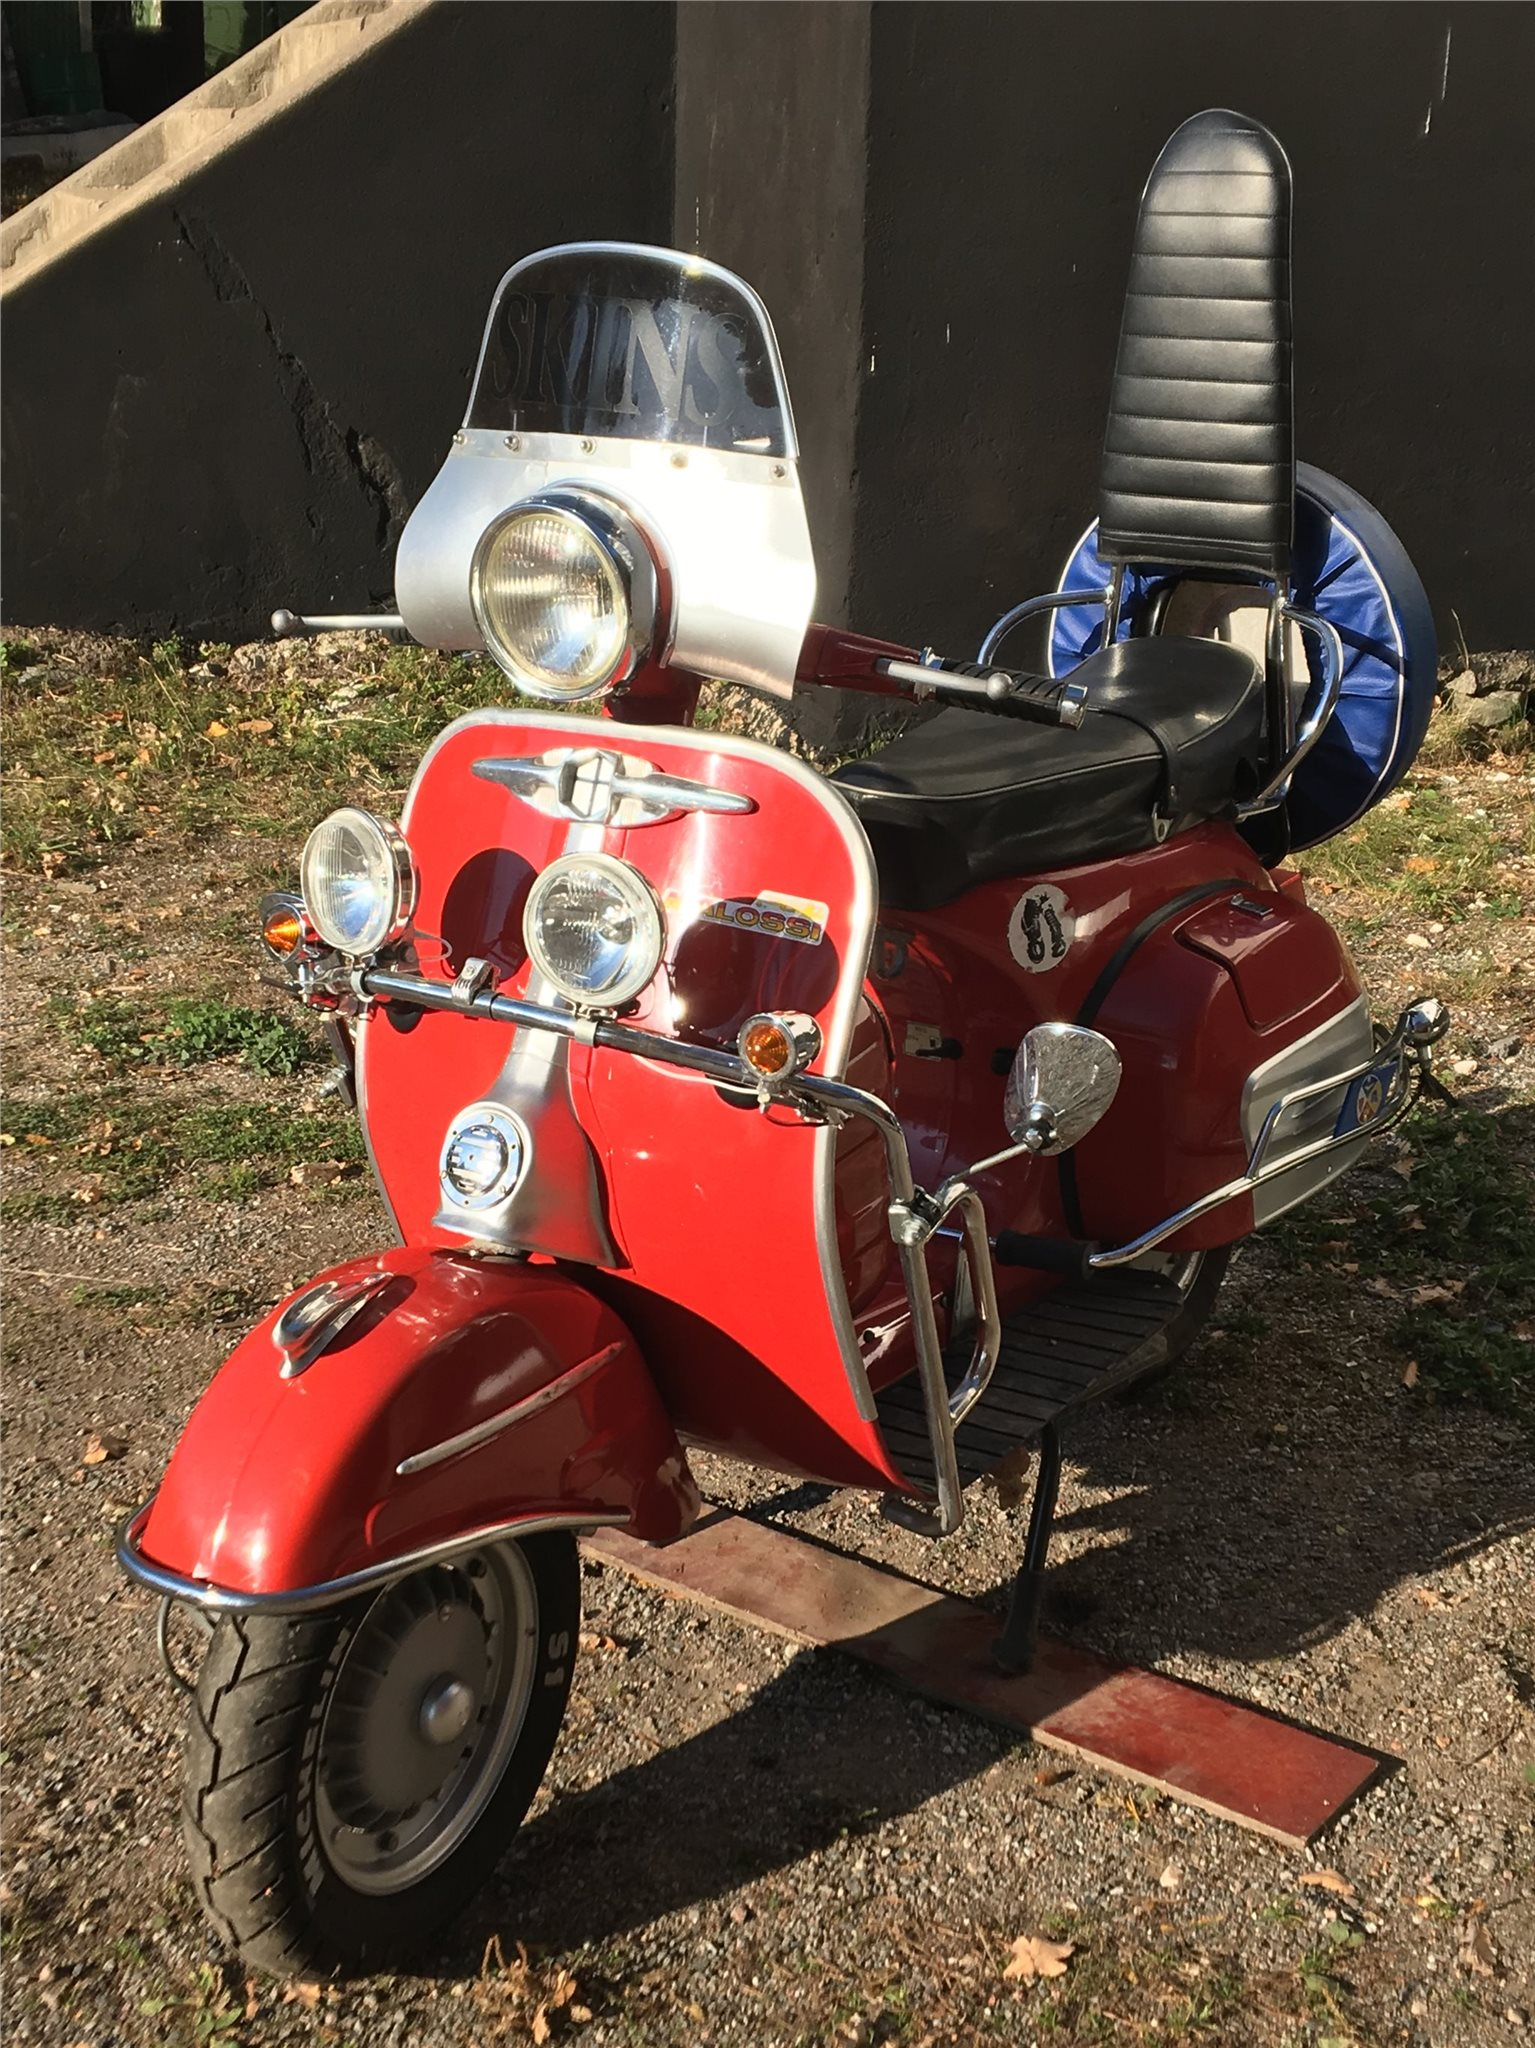 Mods scooter